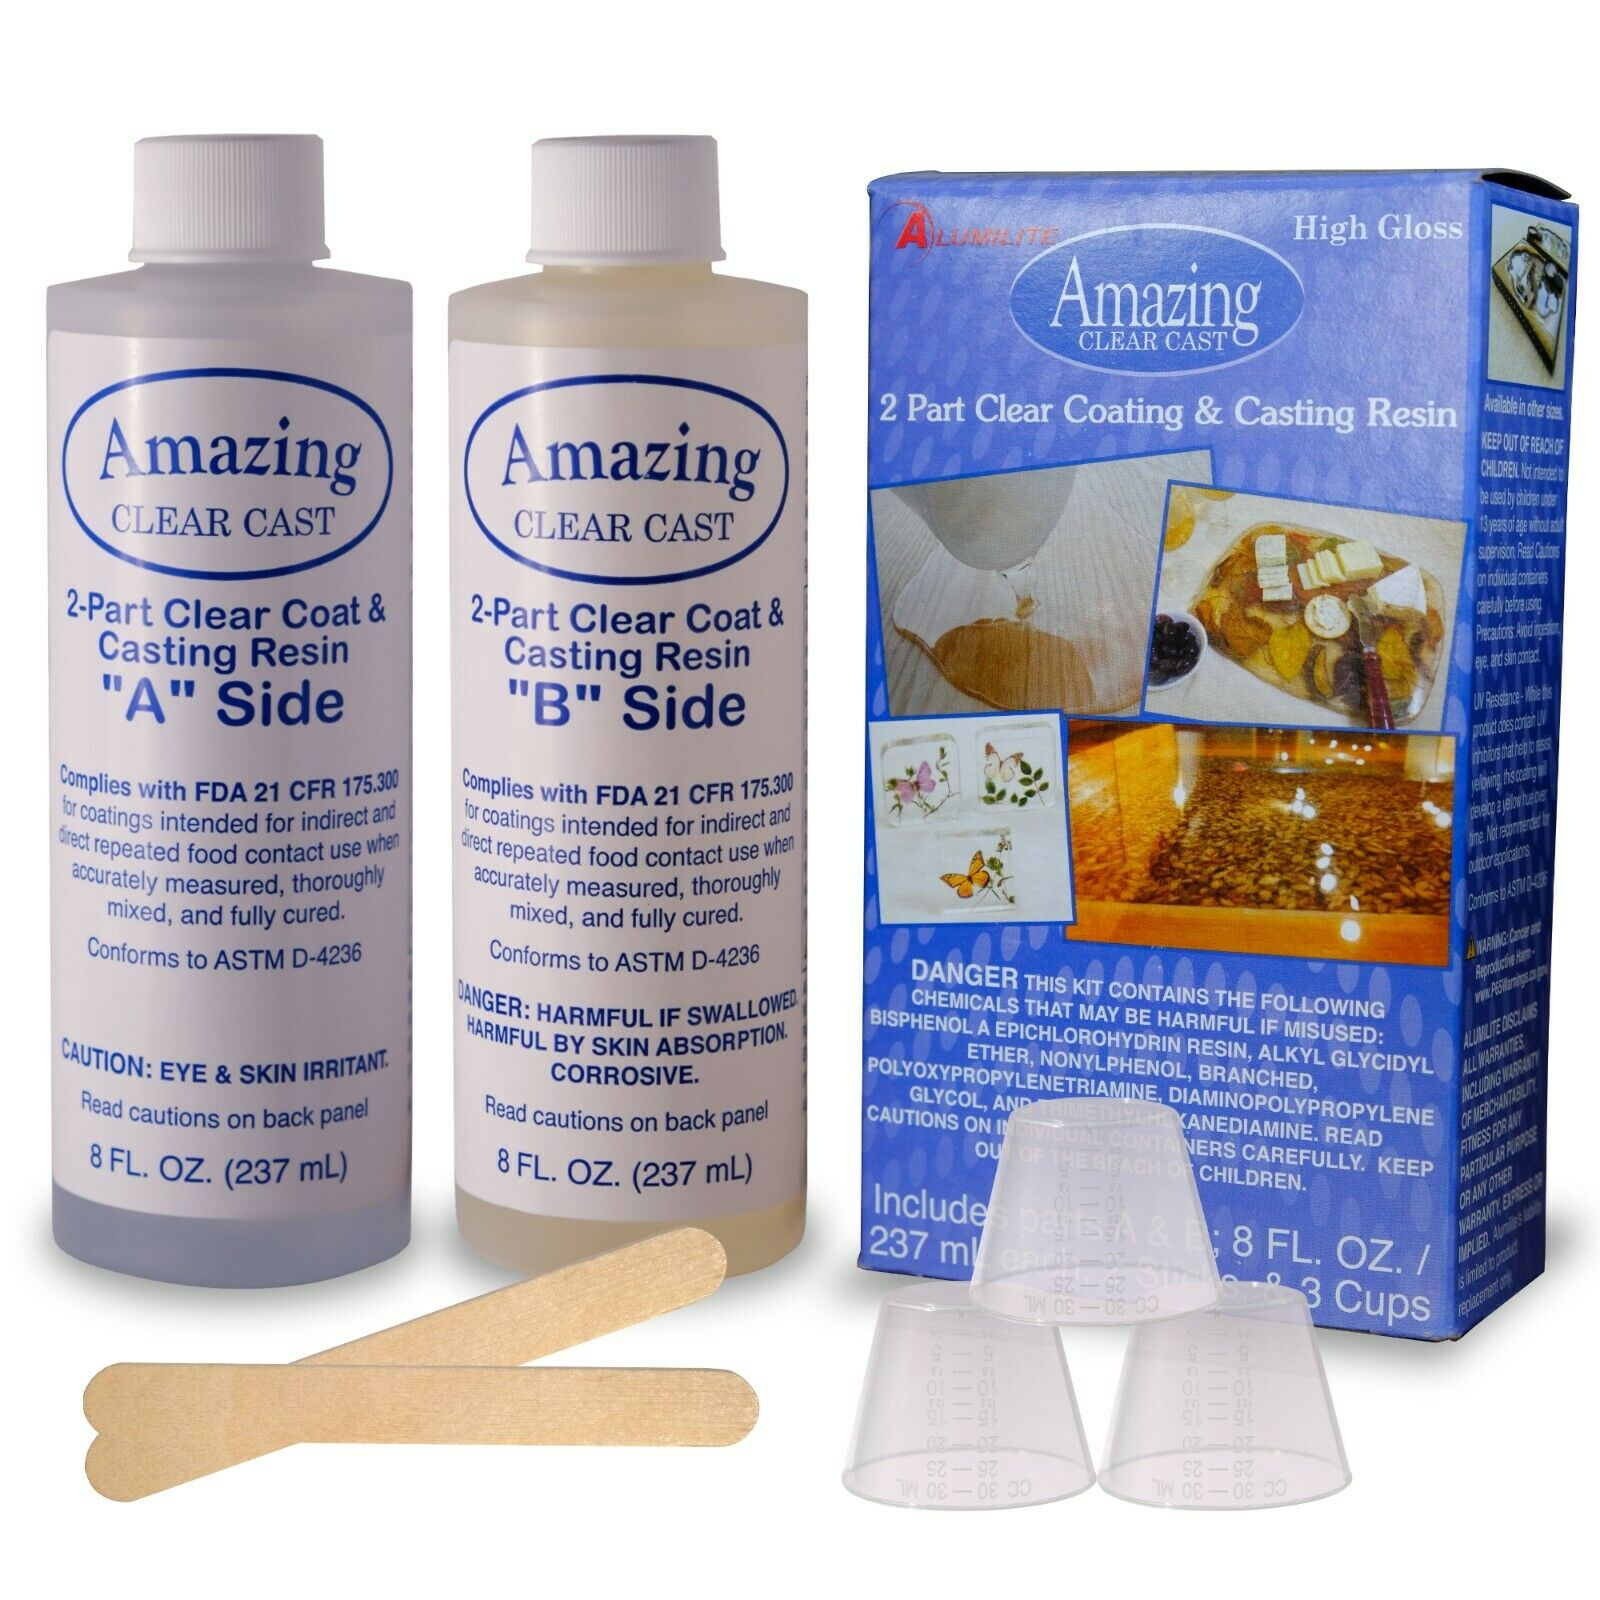 Alumilite Amazing Clear Cast Epoxy Resin Kit, Clear, High Gl